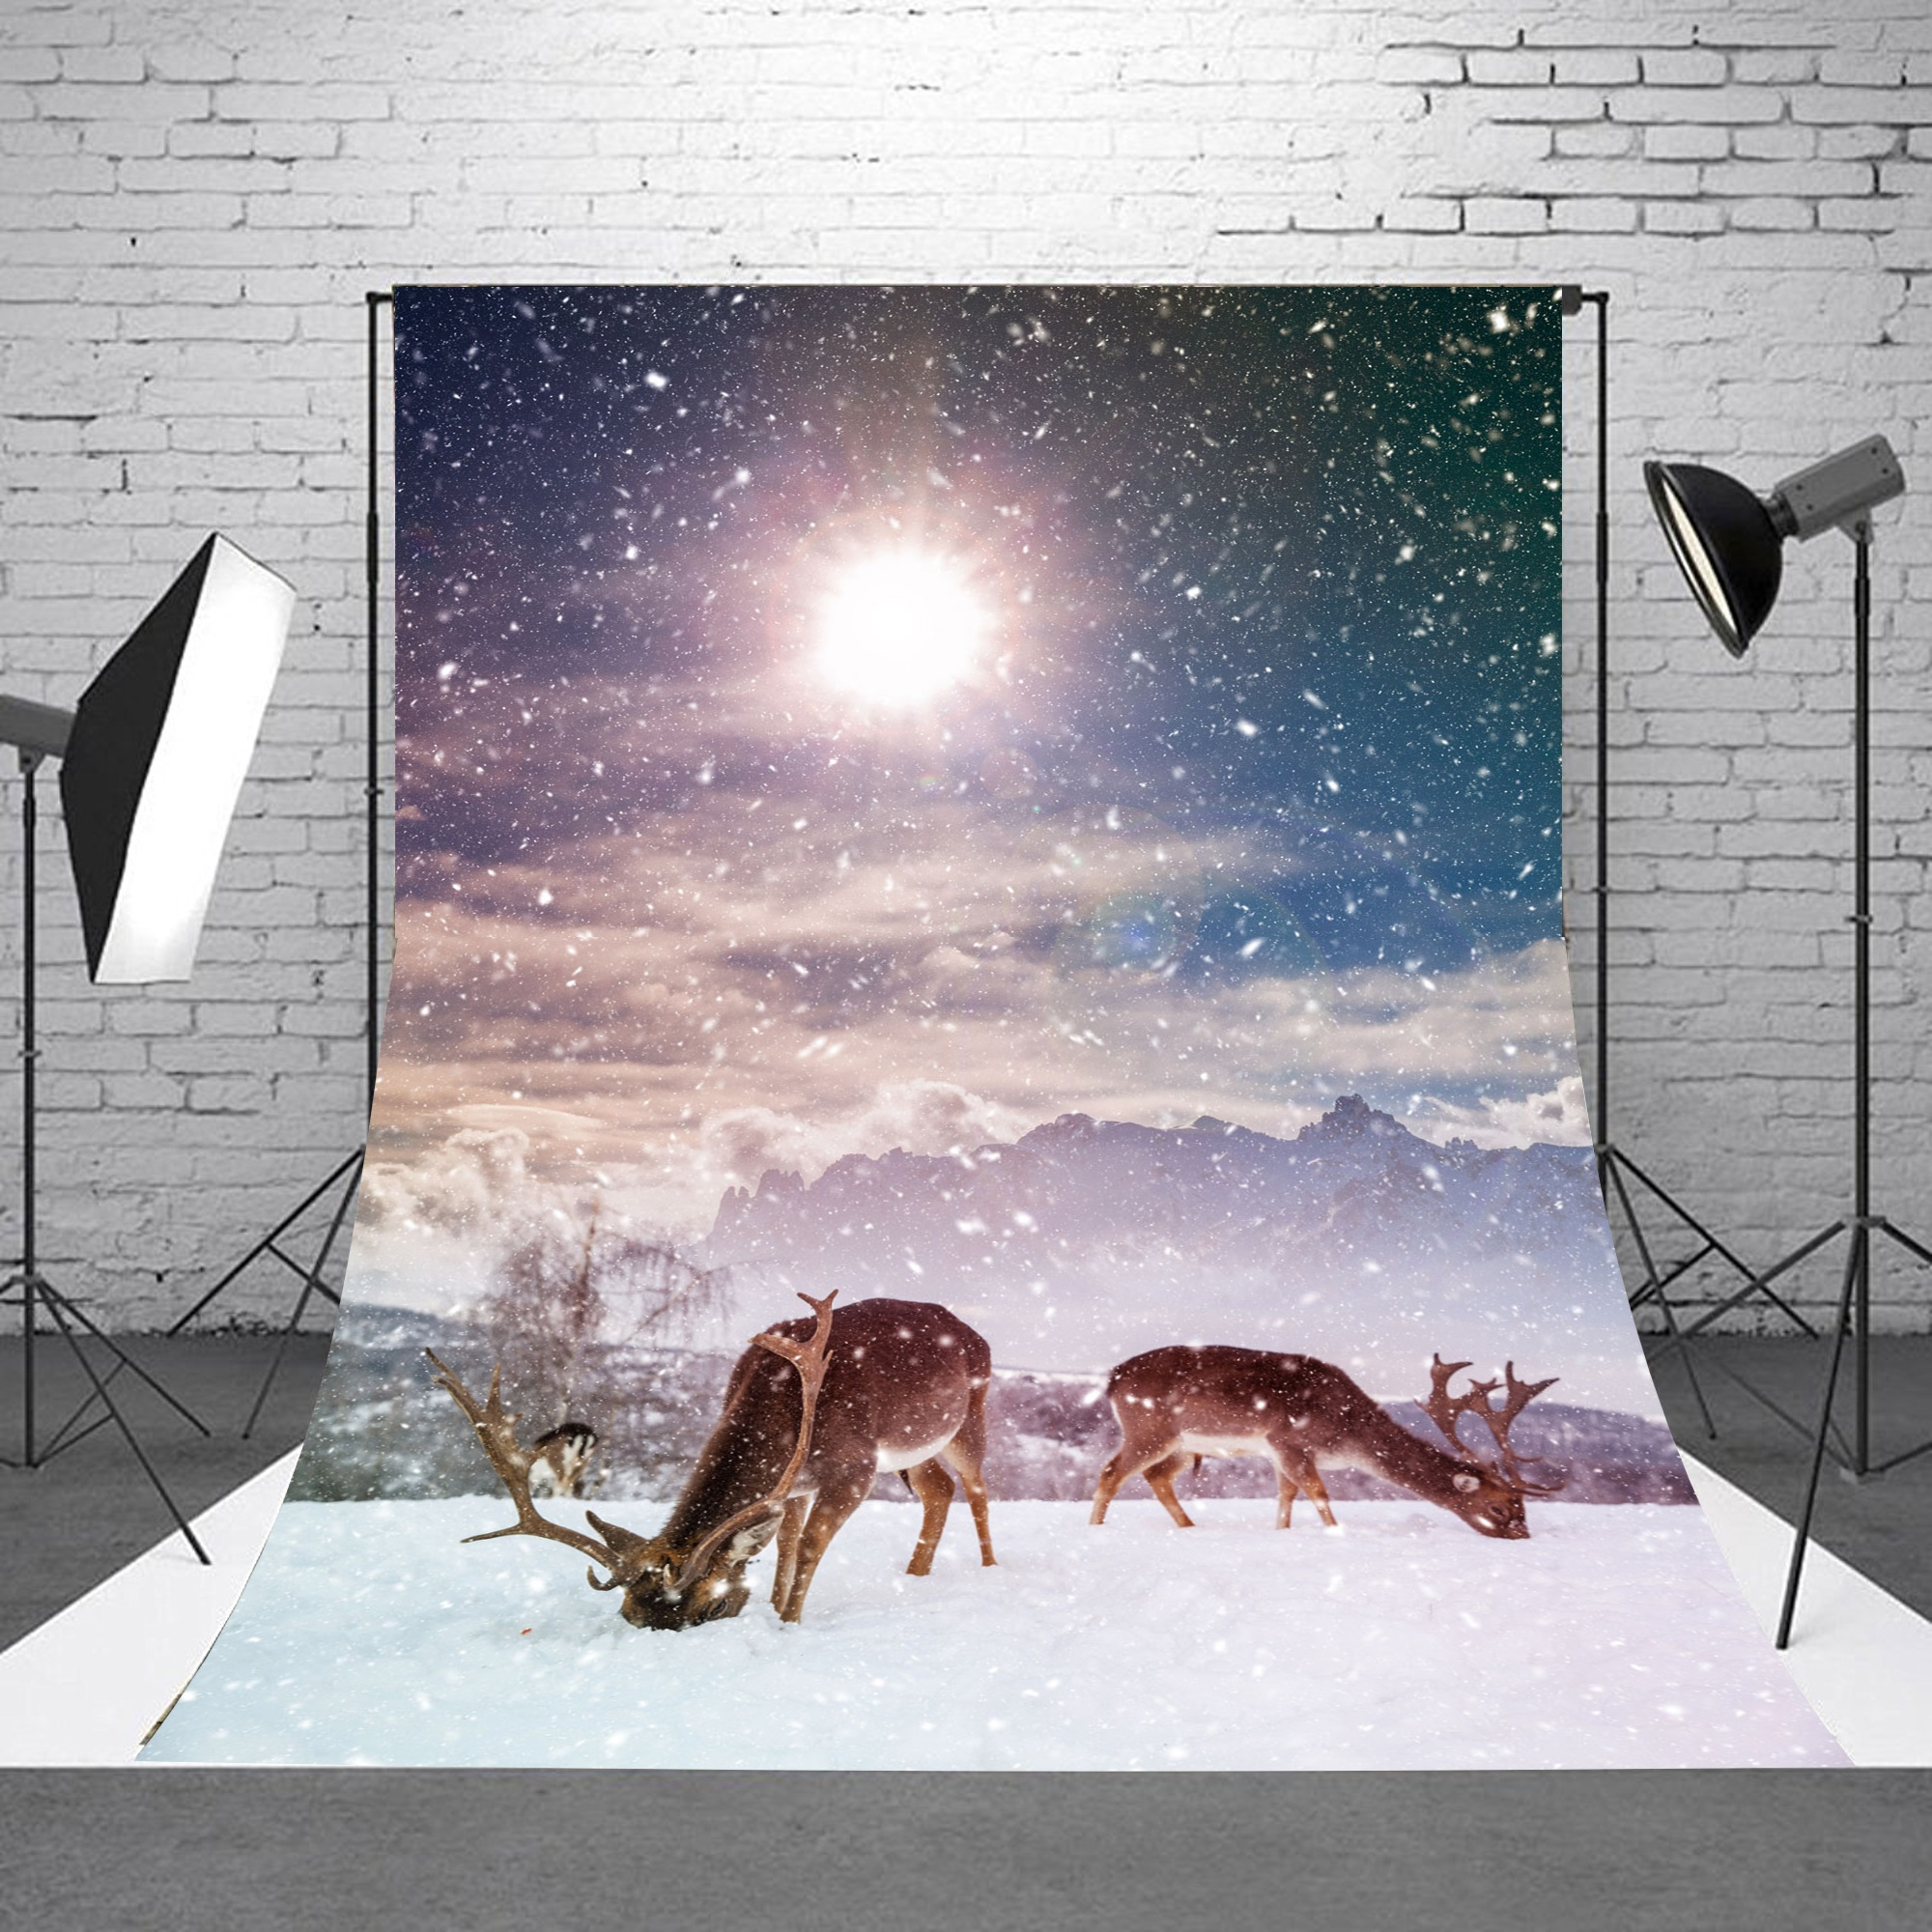 NK HOME Studio Photo Video Photography Backdrops 5x7ft Christmas Slopes & Reindeer Printed Vinyl Fabric Background Screen Props